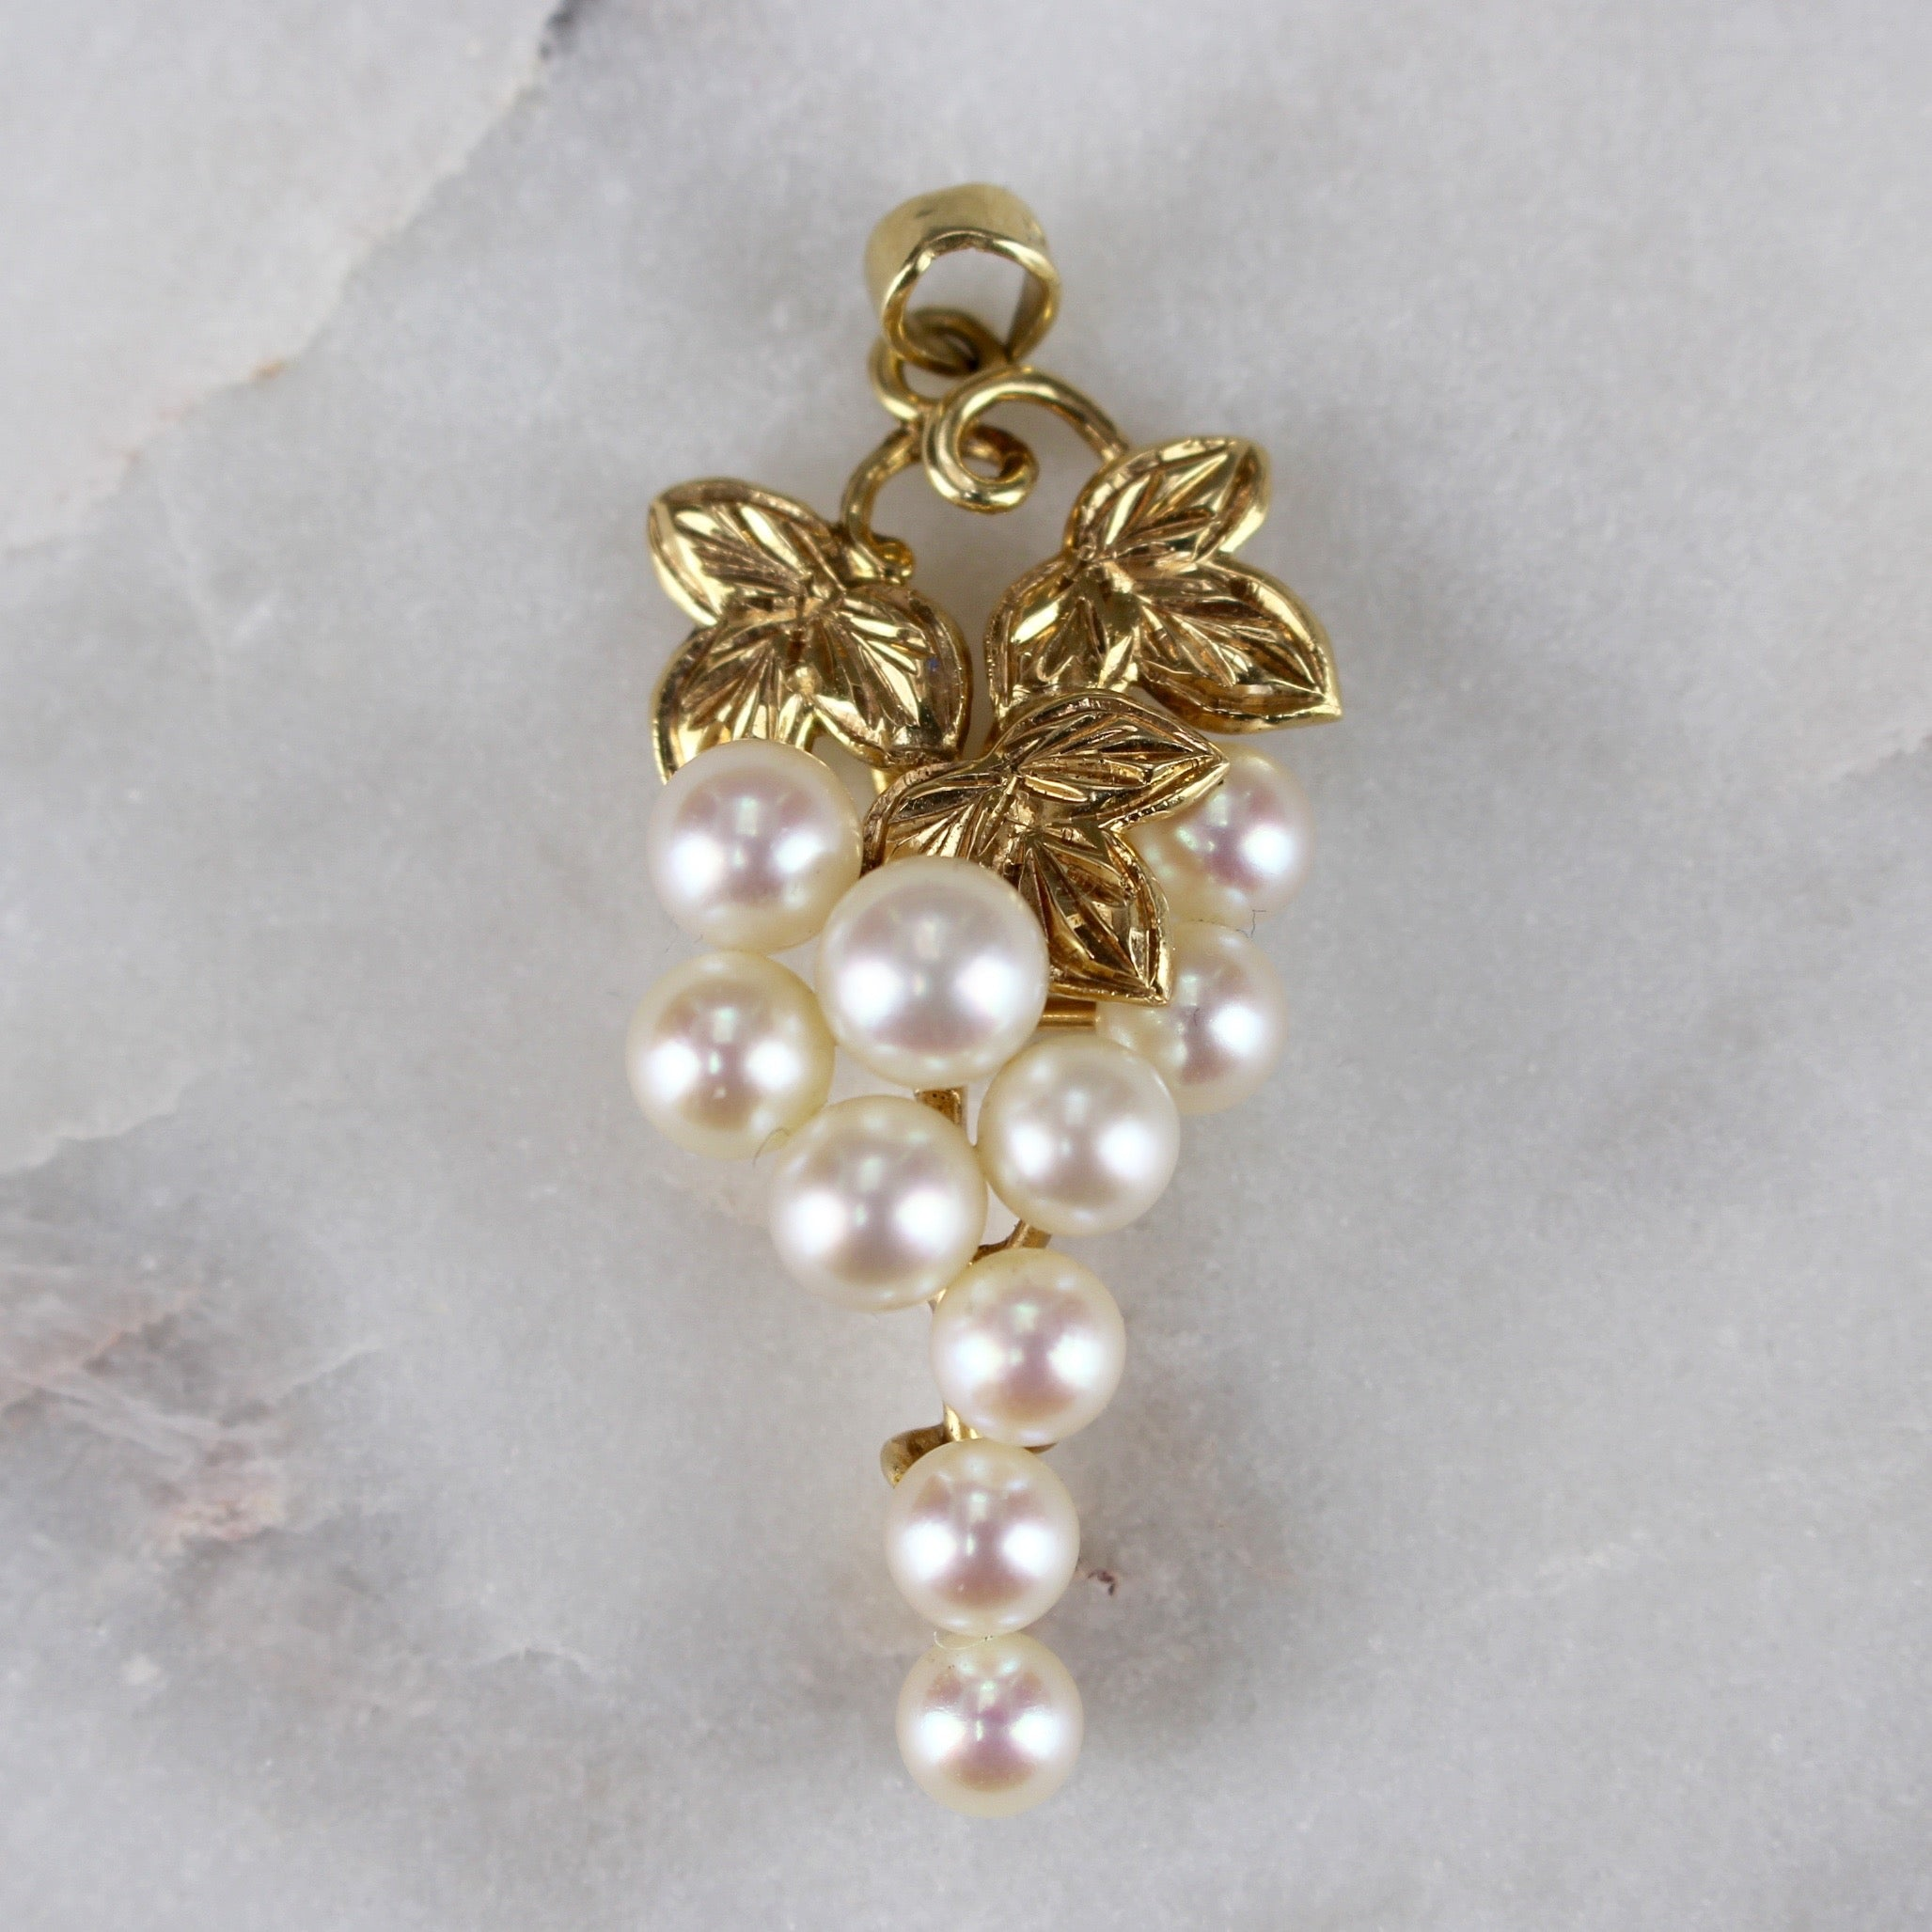 Grape Bunch Pendant of Gold and Pearls (c. 1970s)